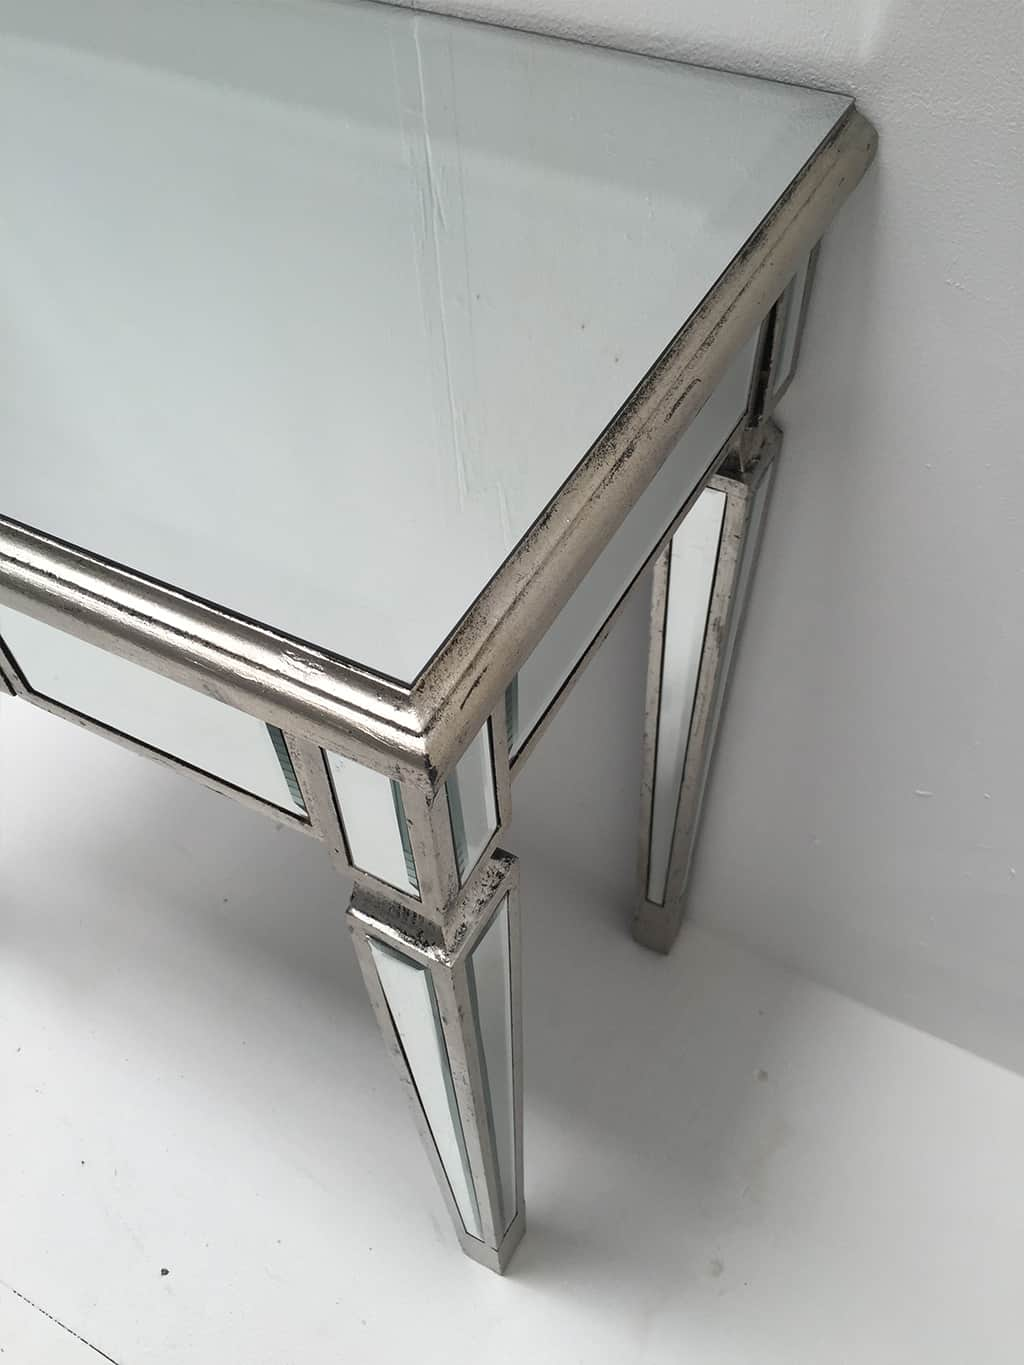 Mirrored Console Table with one drawer, slim design, drop shaped handle, antiqued silver finish, wood and mirror